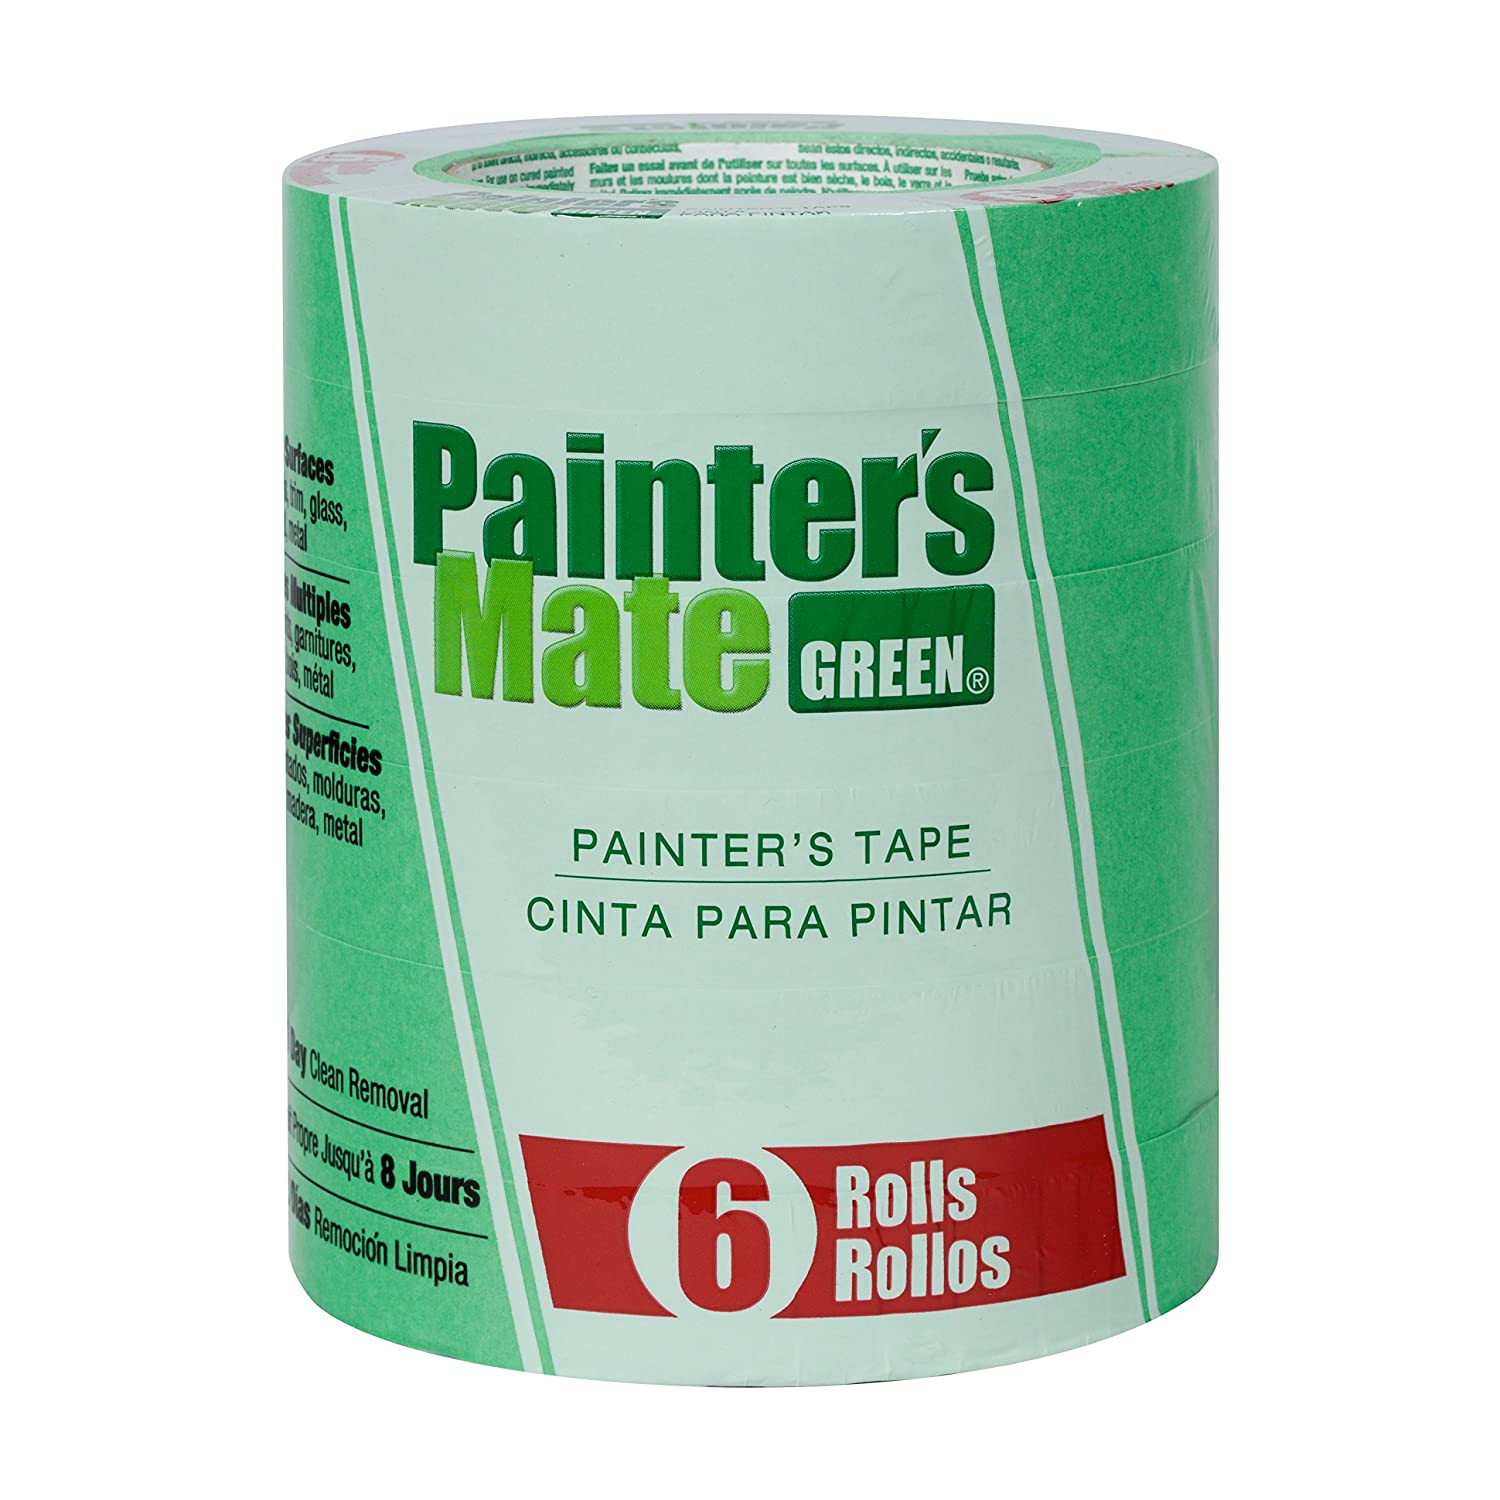 Painter's Mate 668840 Green 8-Day Painting Tape, 0.94-Inch by 60-Yard, 6-Pack of Rolls